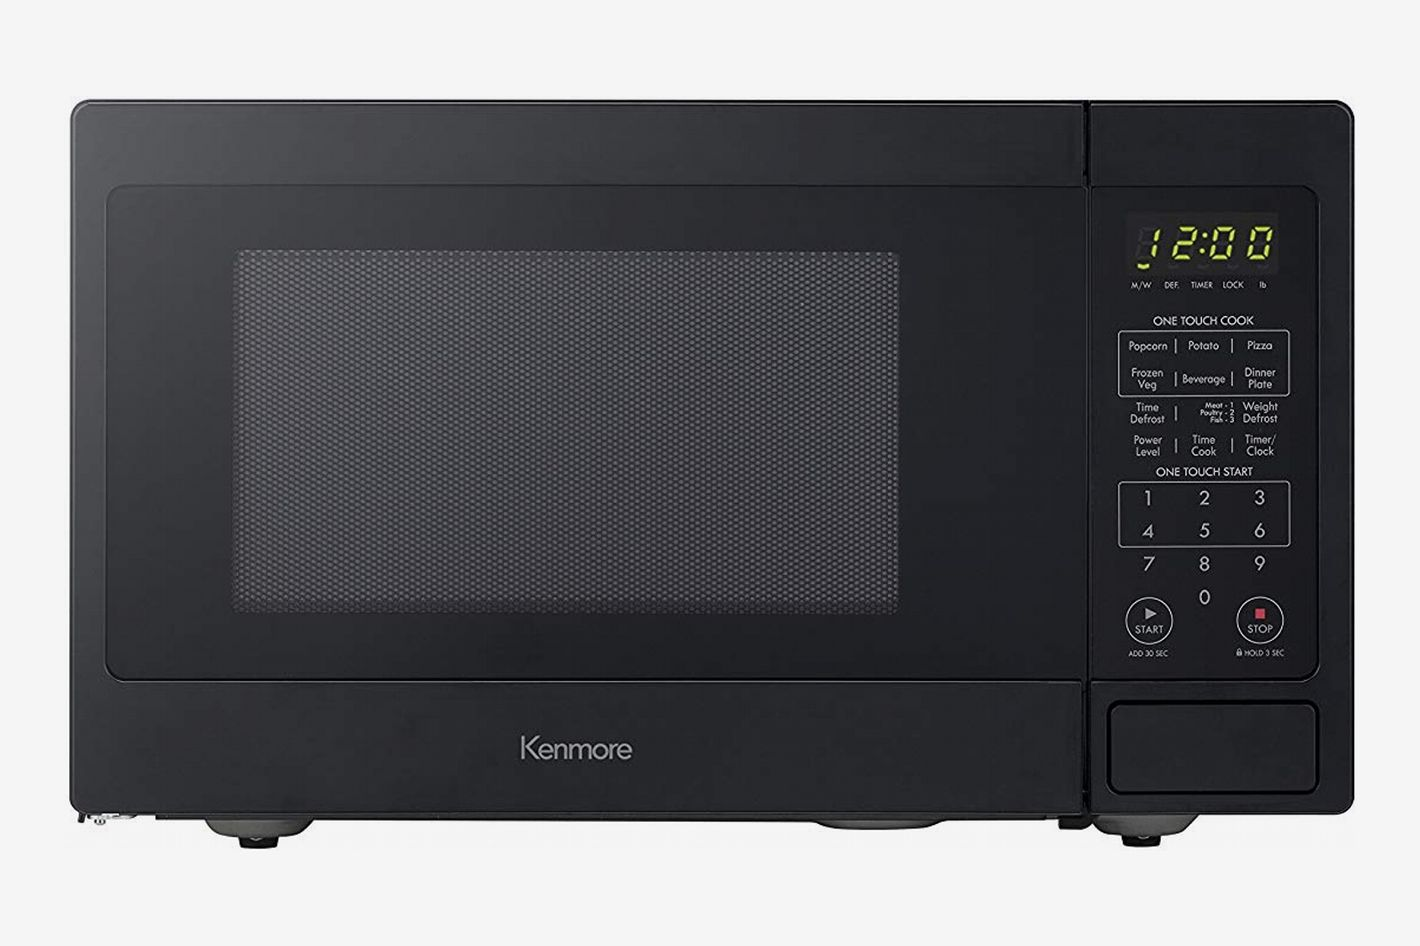 Kenmore 70719 Small 700w Countertop Microwave 0 7 Cu Ft